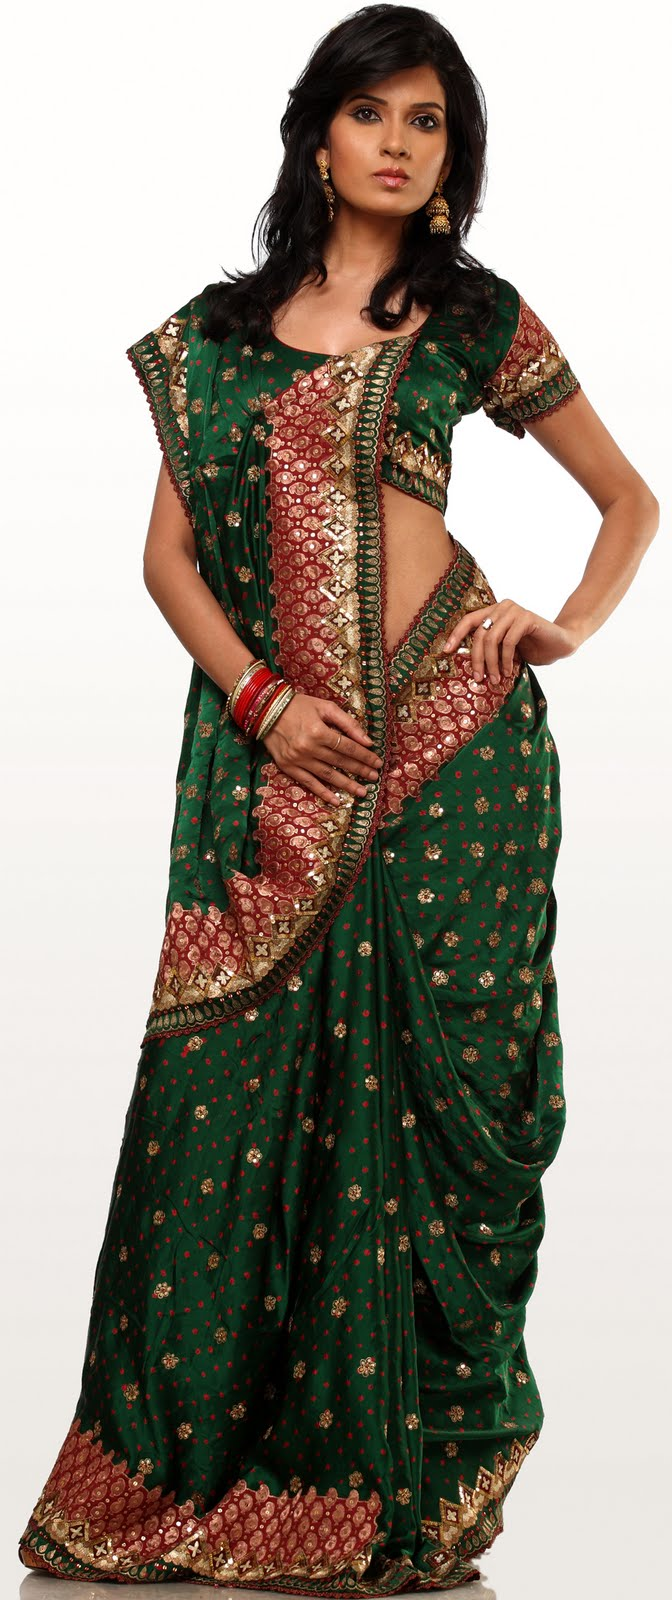 http://3.bp.blogspot.com/-8dpx8iTCENY/ThtvvzBmTII/AAAAAAAAEnc/0ogF5IX4LPI/s1600/Designers%2BSarees%2BCollection%2B%25284%2529.jpg